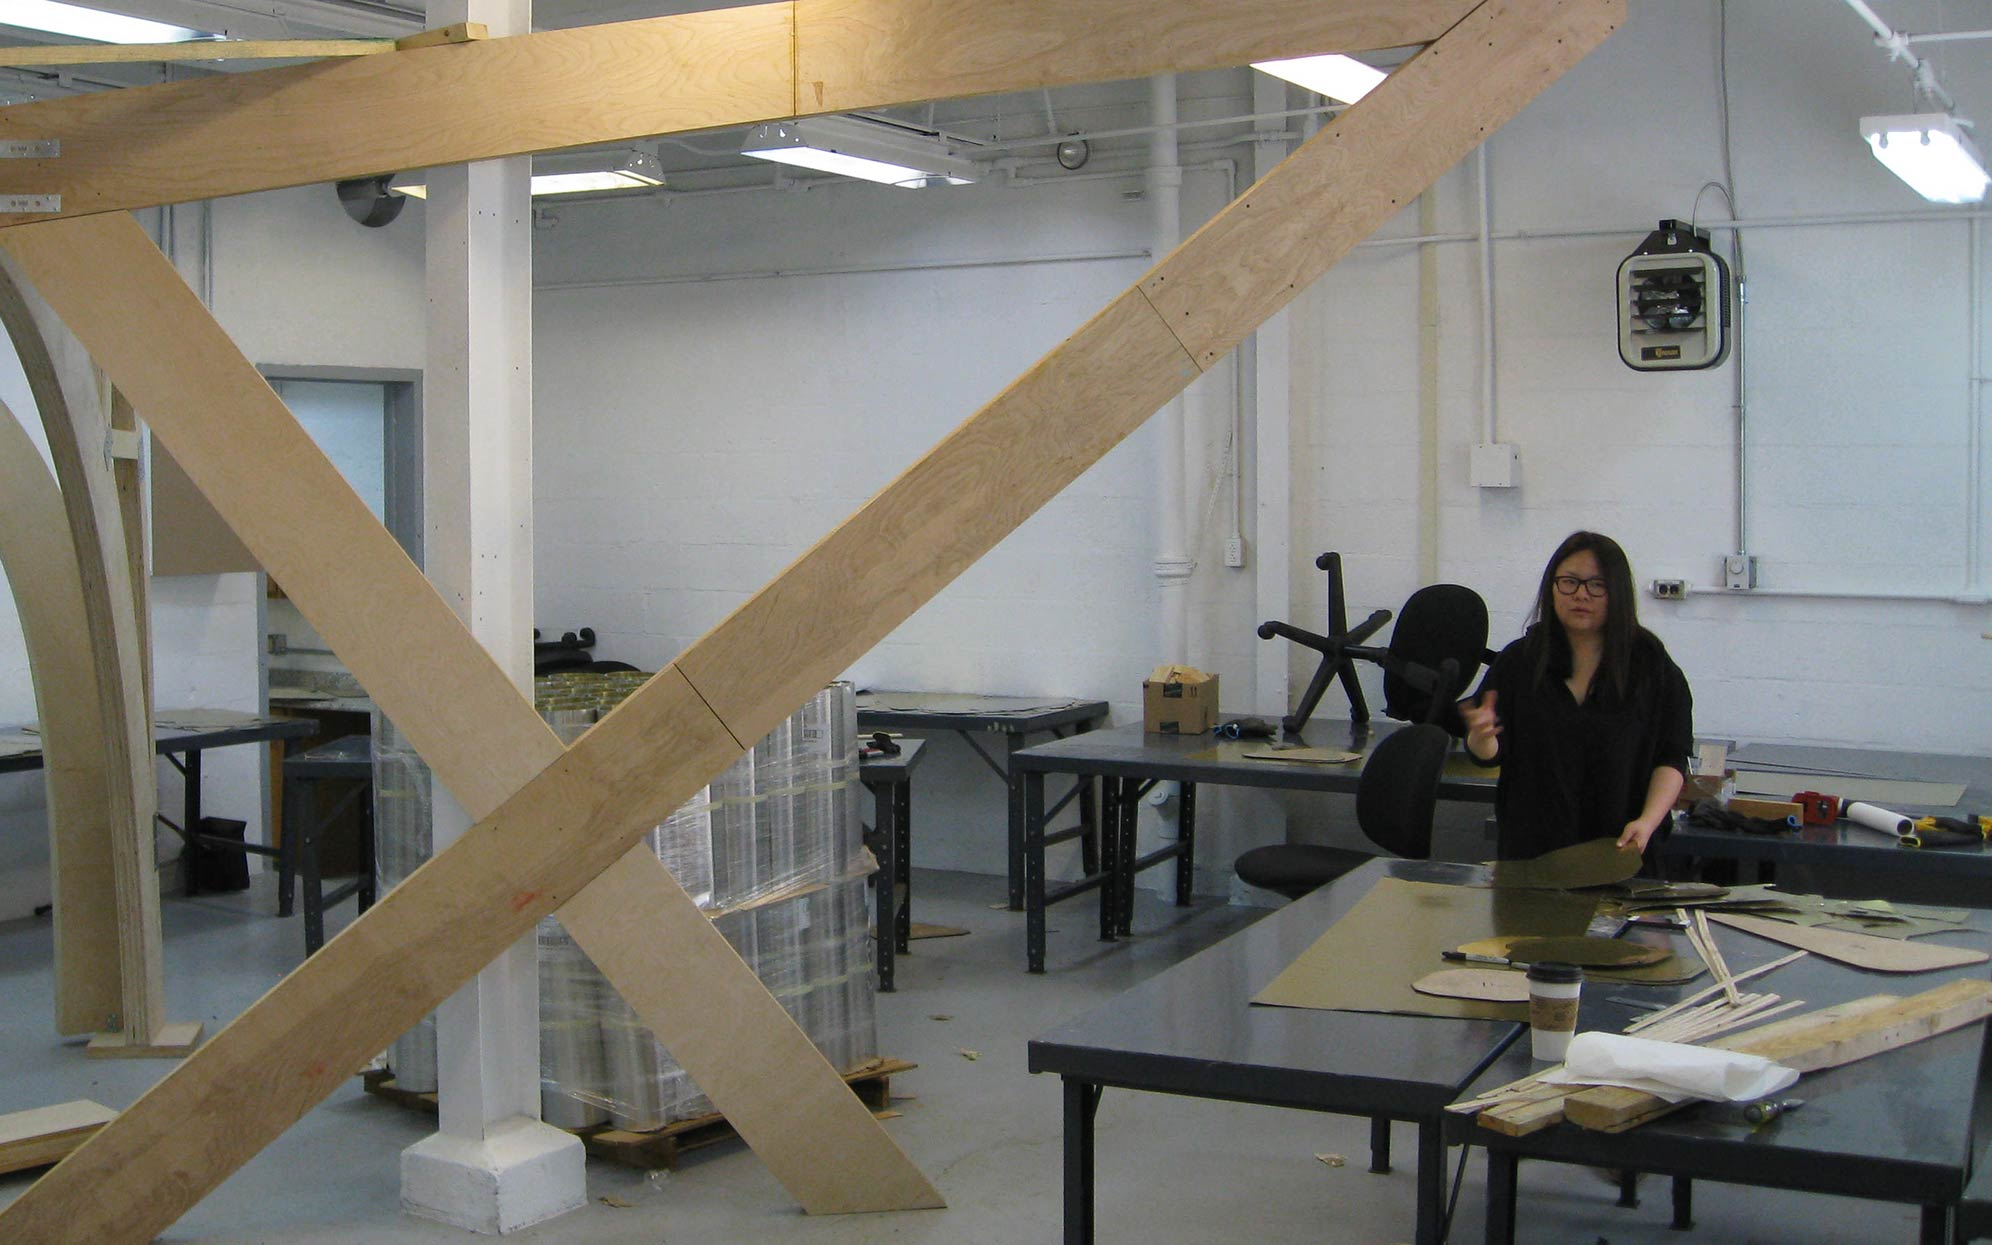 Penn graduate architecture students use this studio space to design and construct